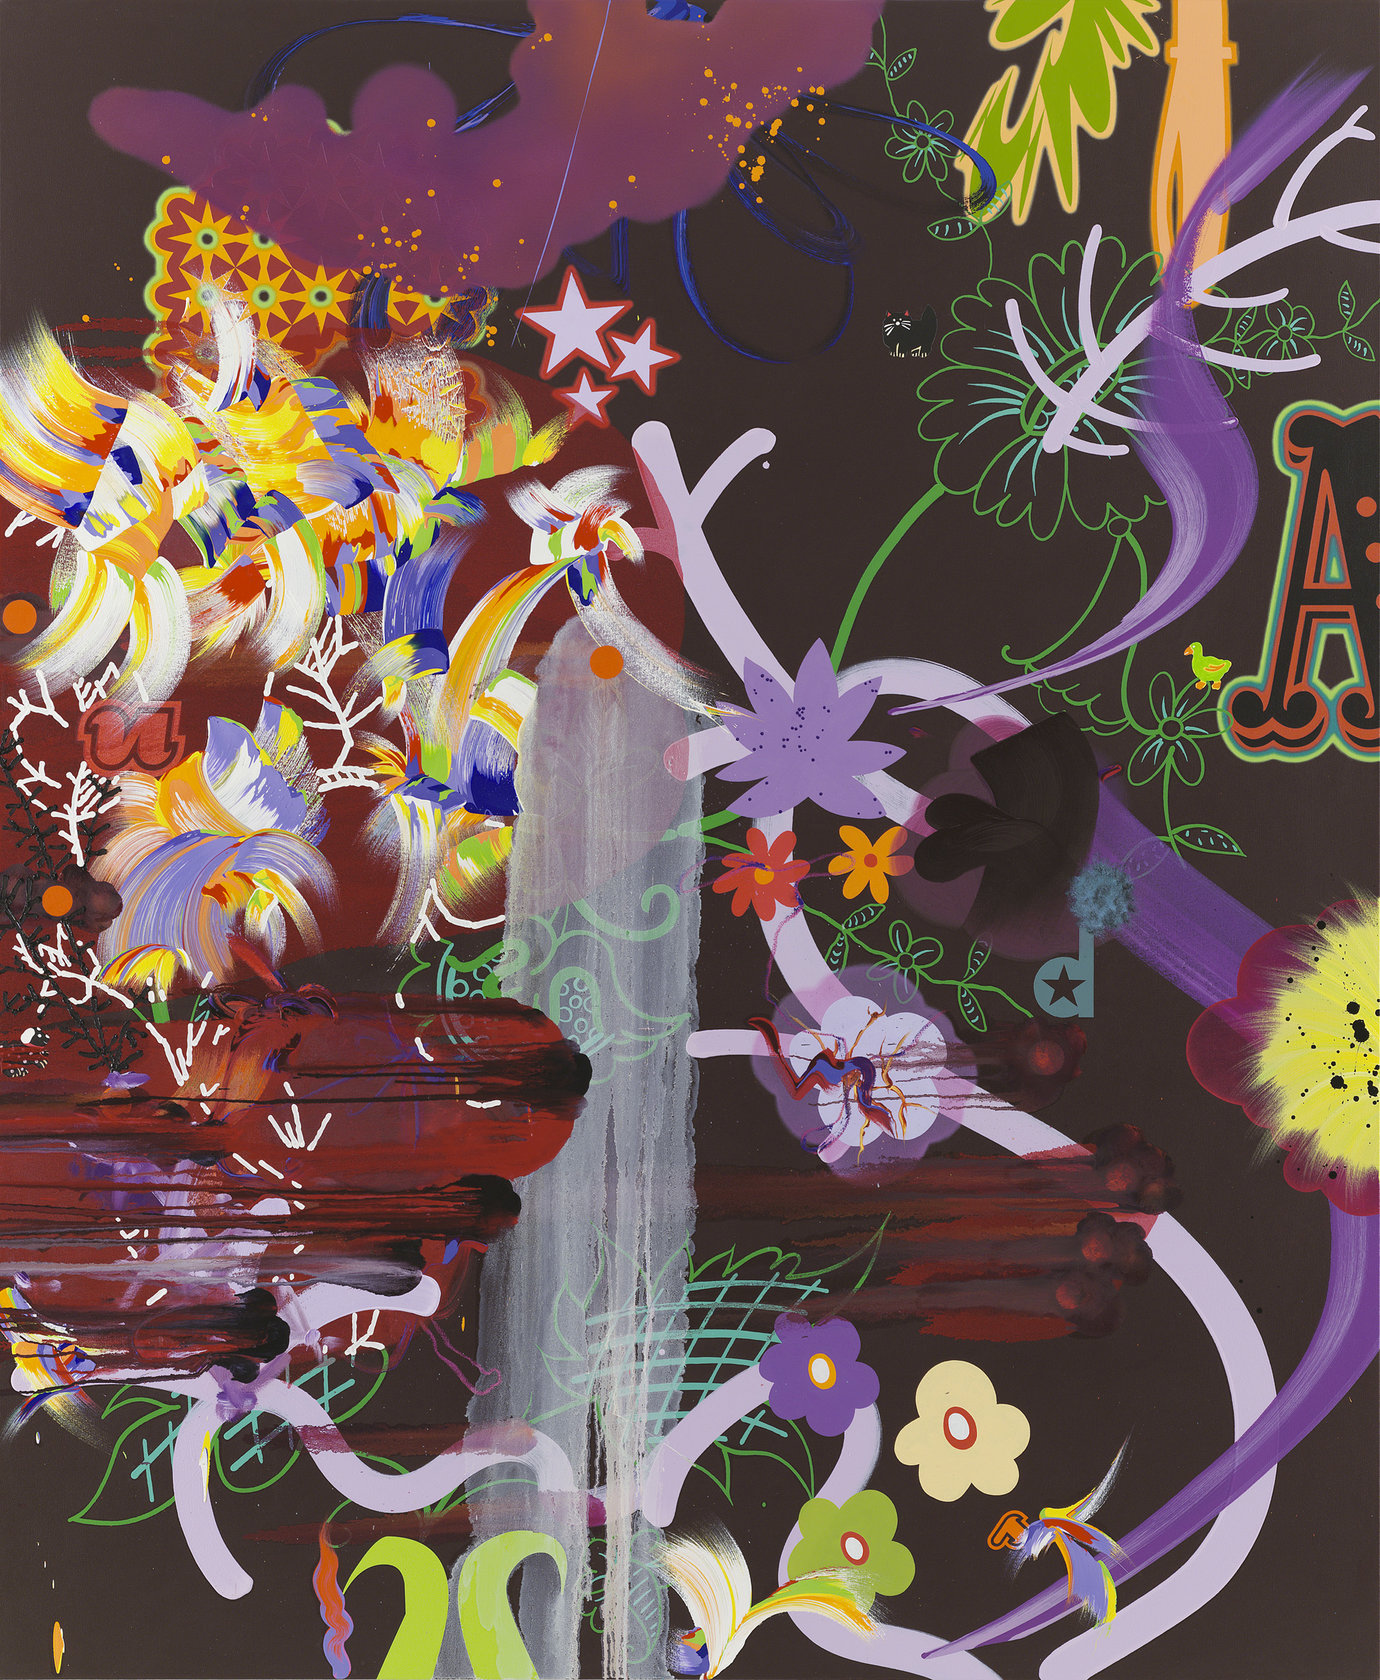 ", 2006. Oil, acrylic and gouache on canvas, 91"" x 75"" (231.1 cm x 190.5 cm)."